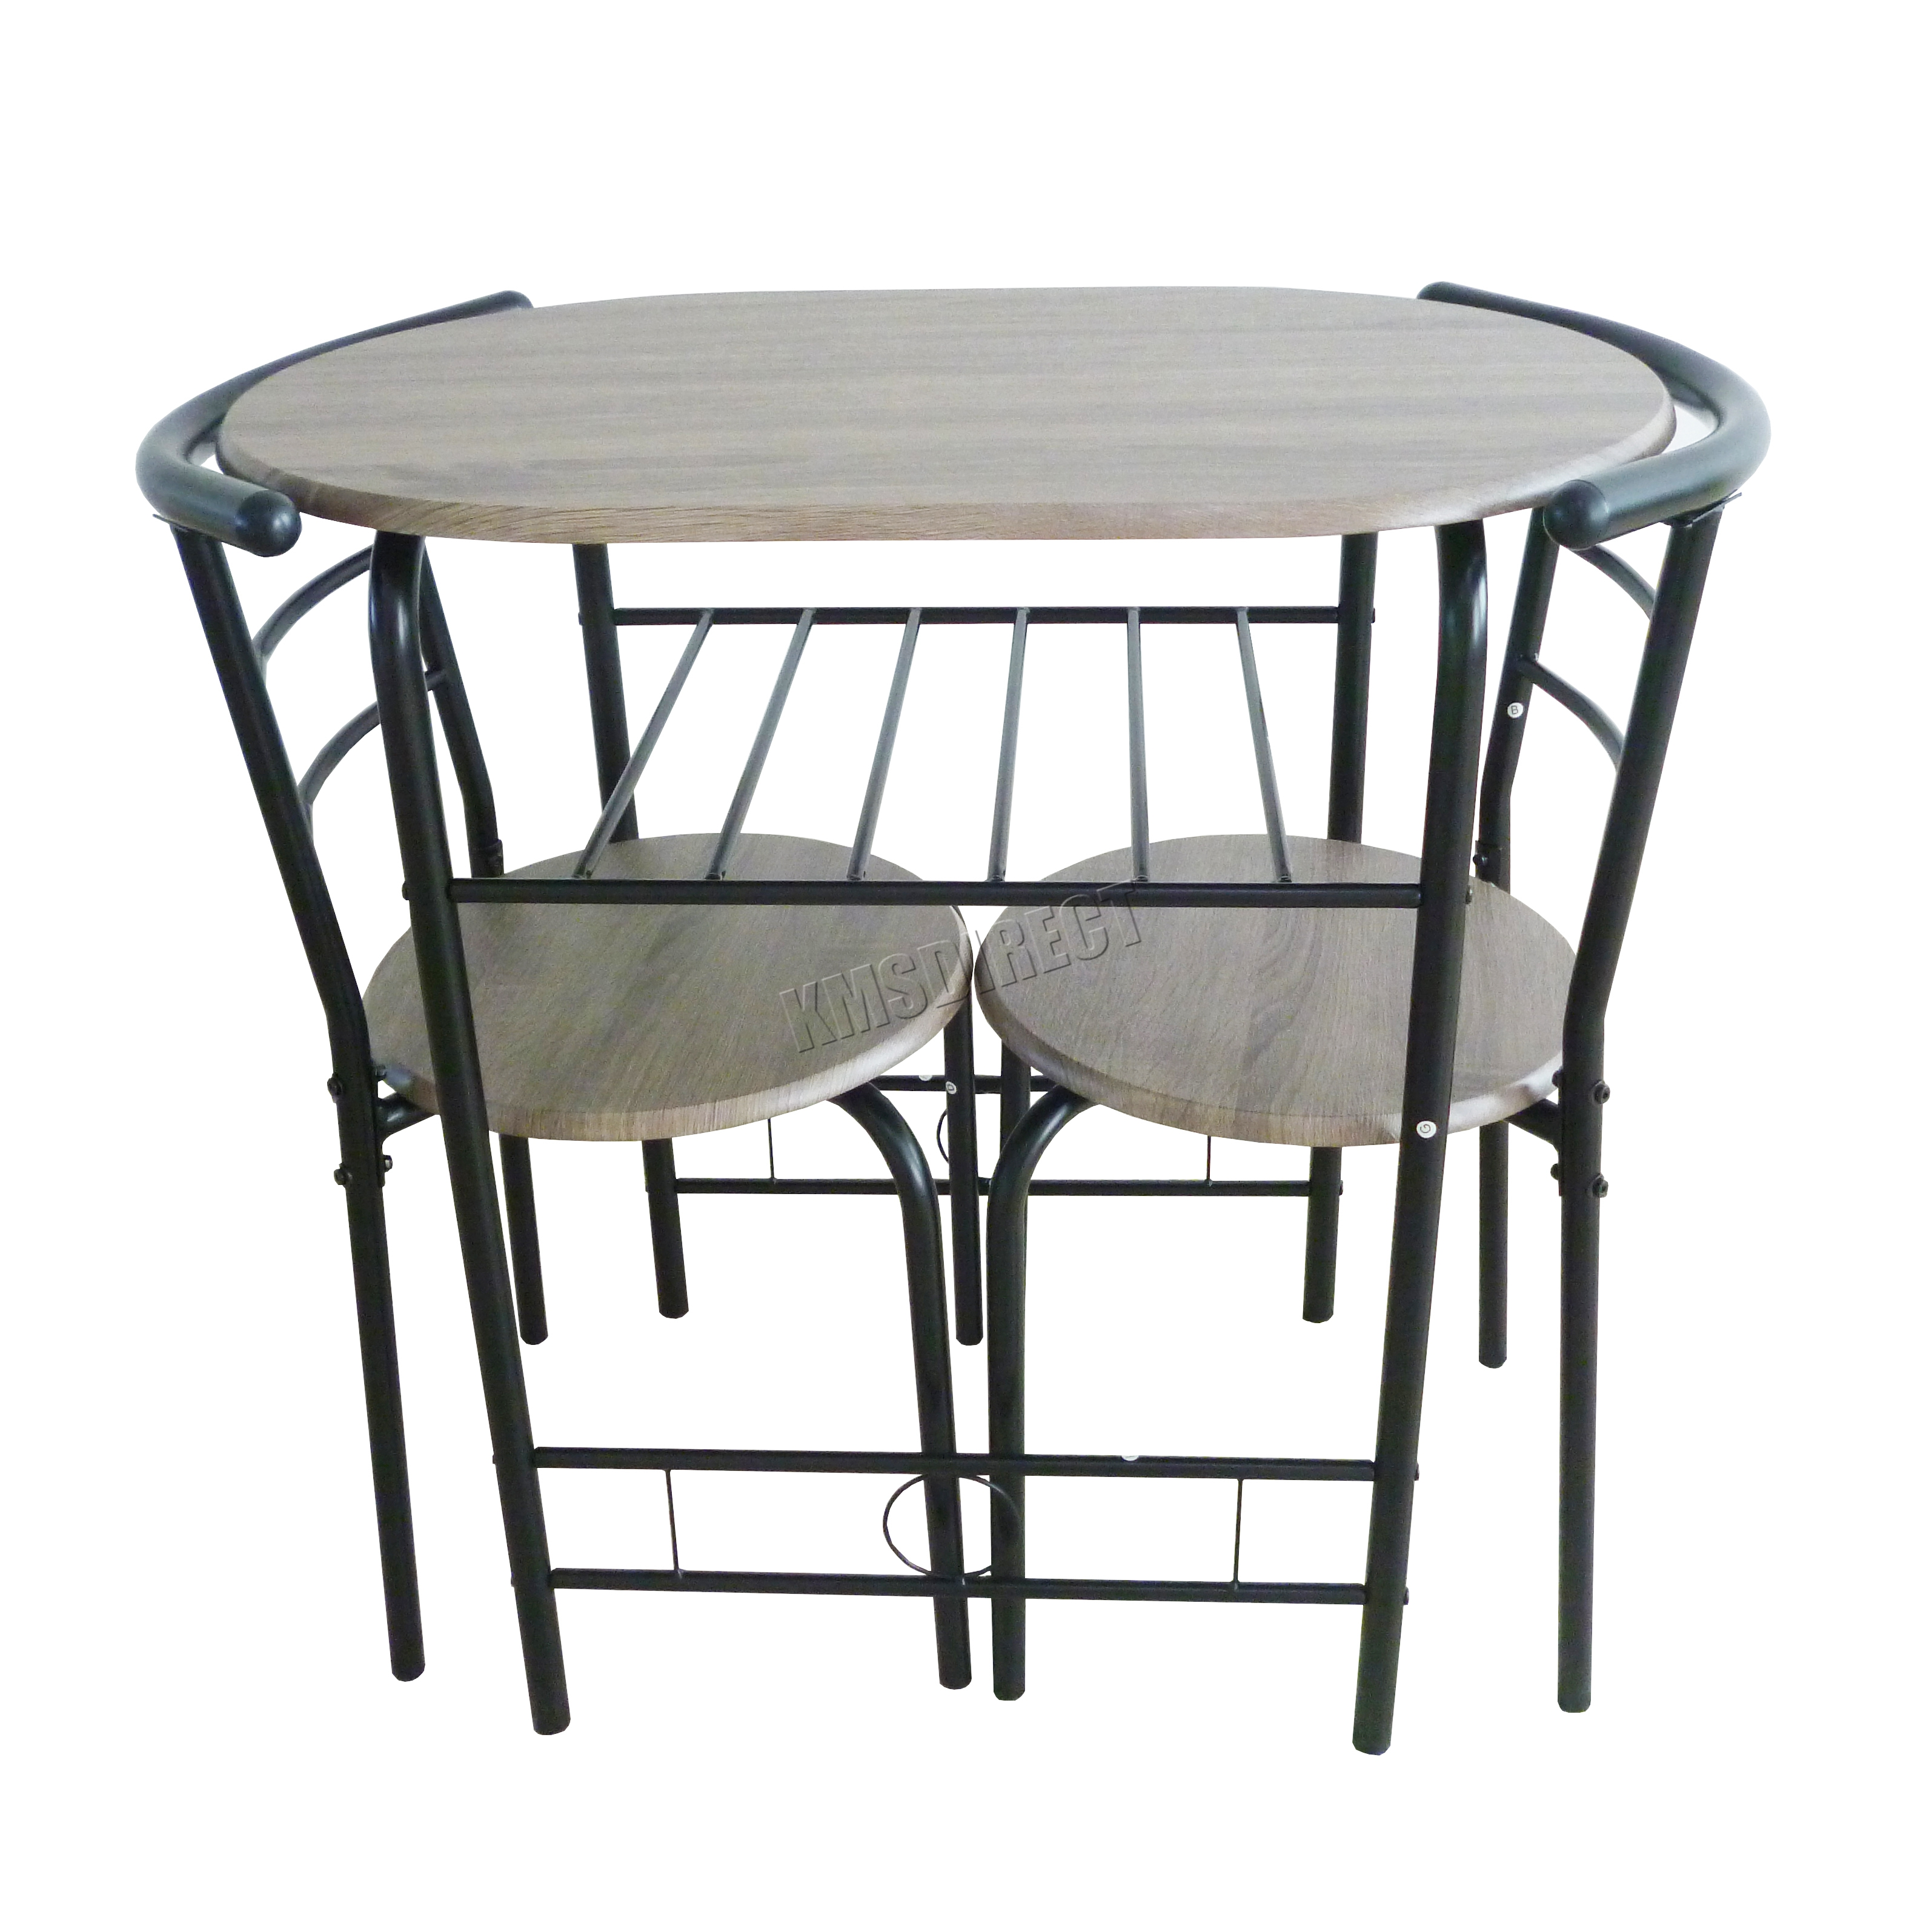 FoxHunter pact Dining Table Breakfast Bar 2 Chair Set Metal MDF